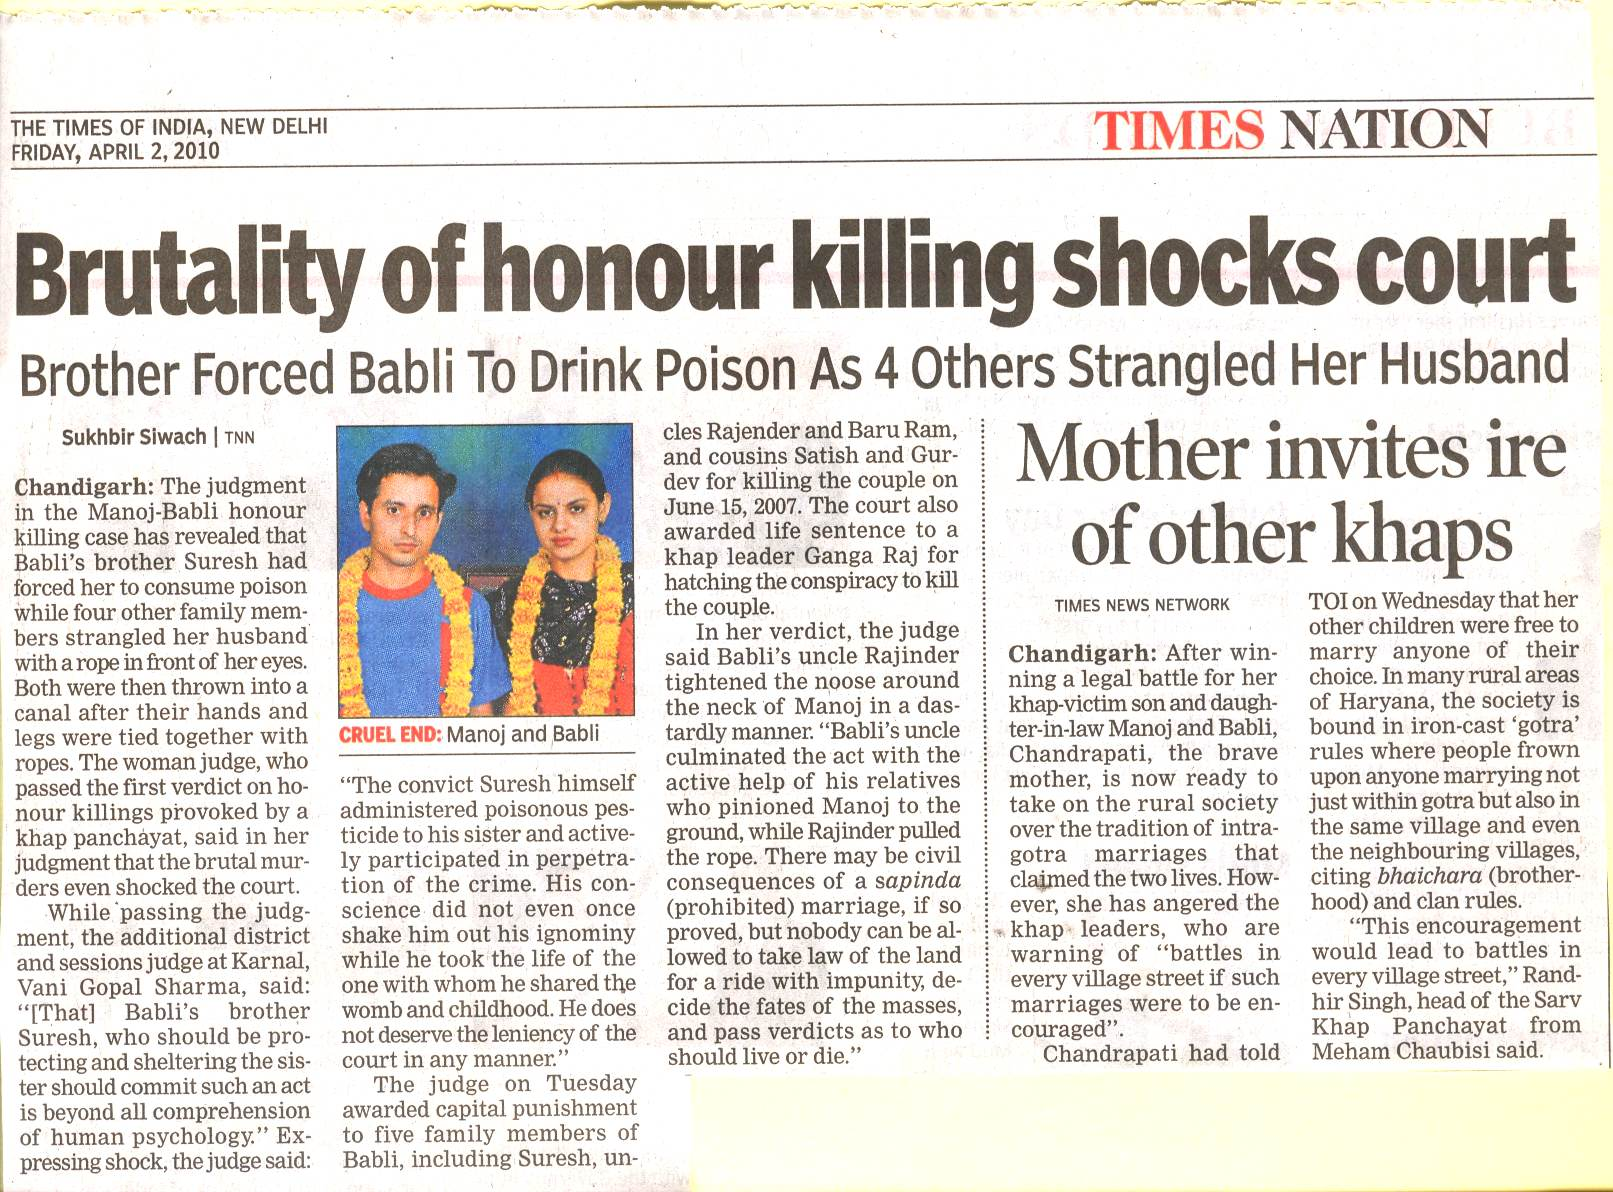 Nothing Honourable in Honour Killing